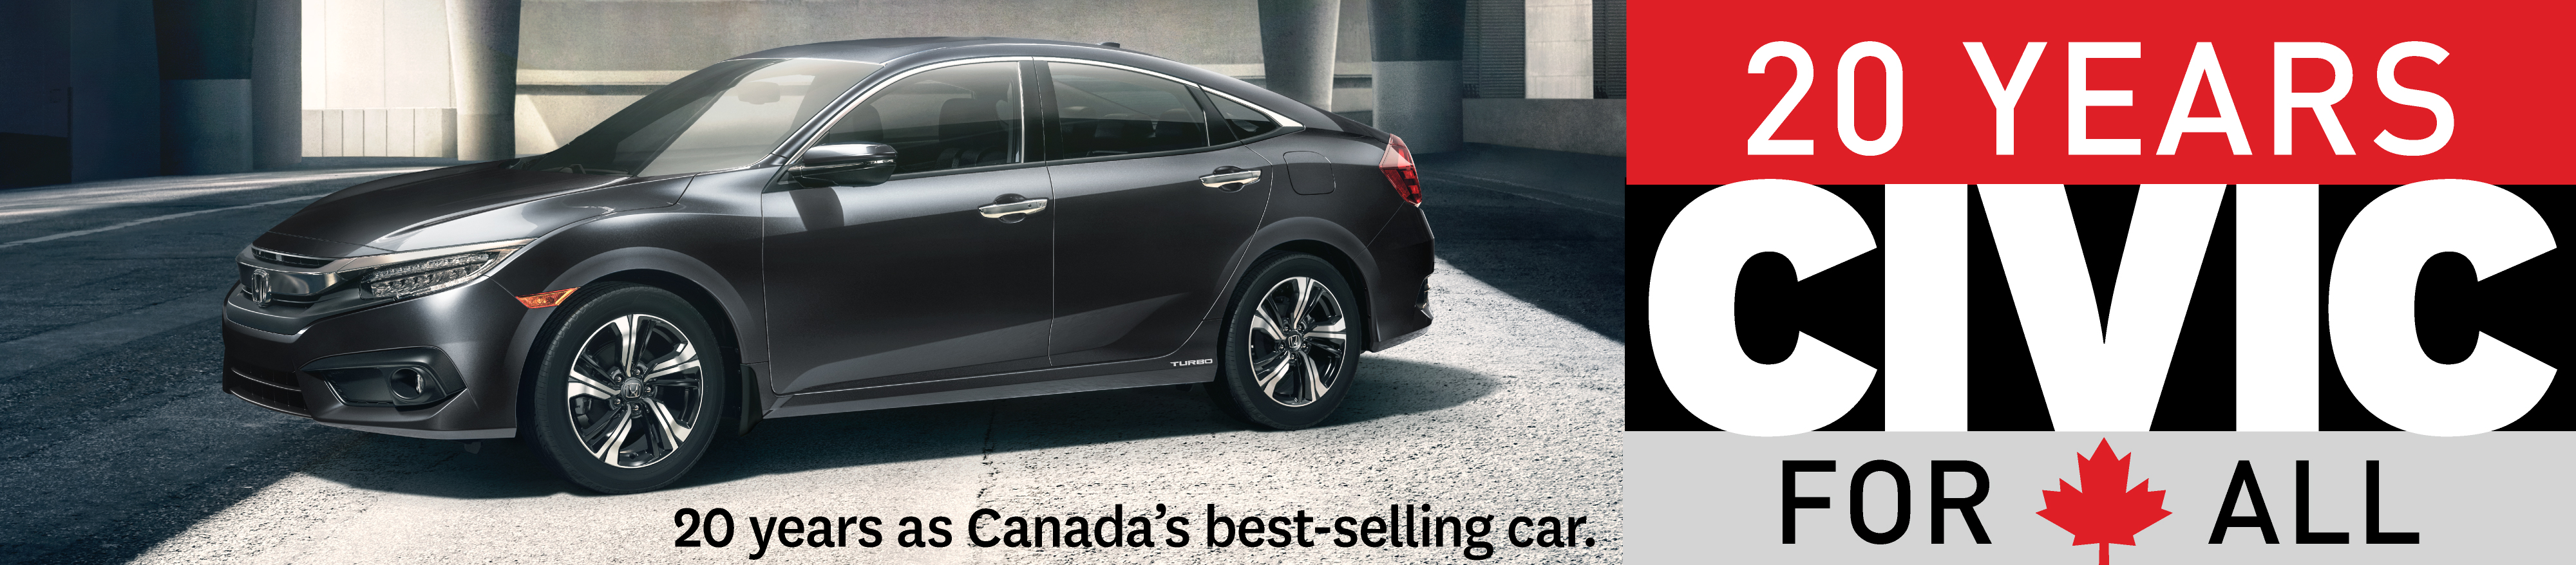 20 years best selling car in canada. the 2018 honda civic